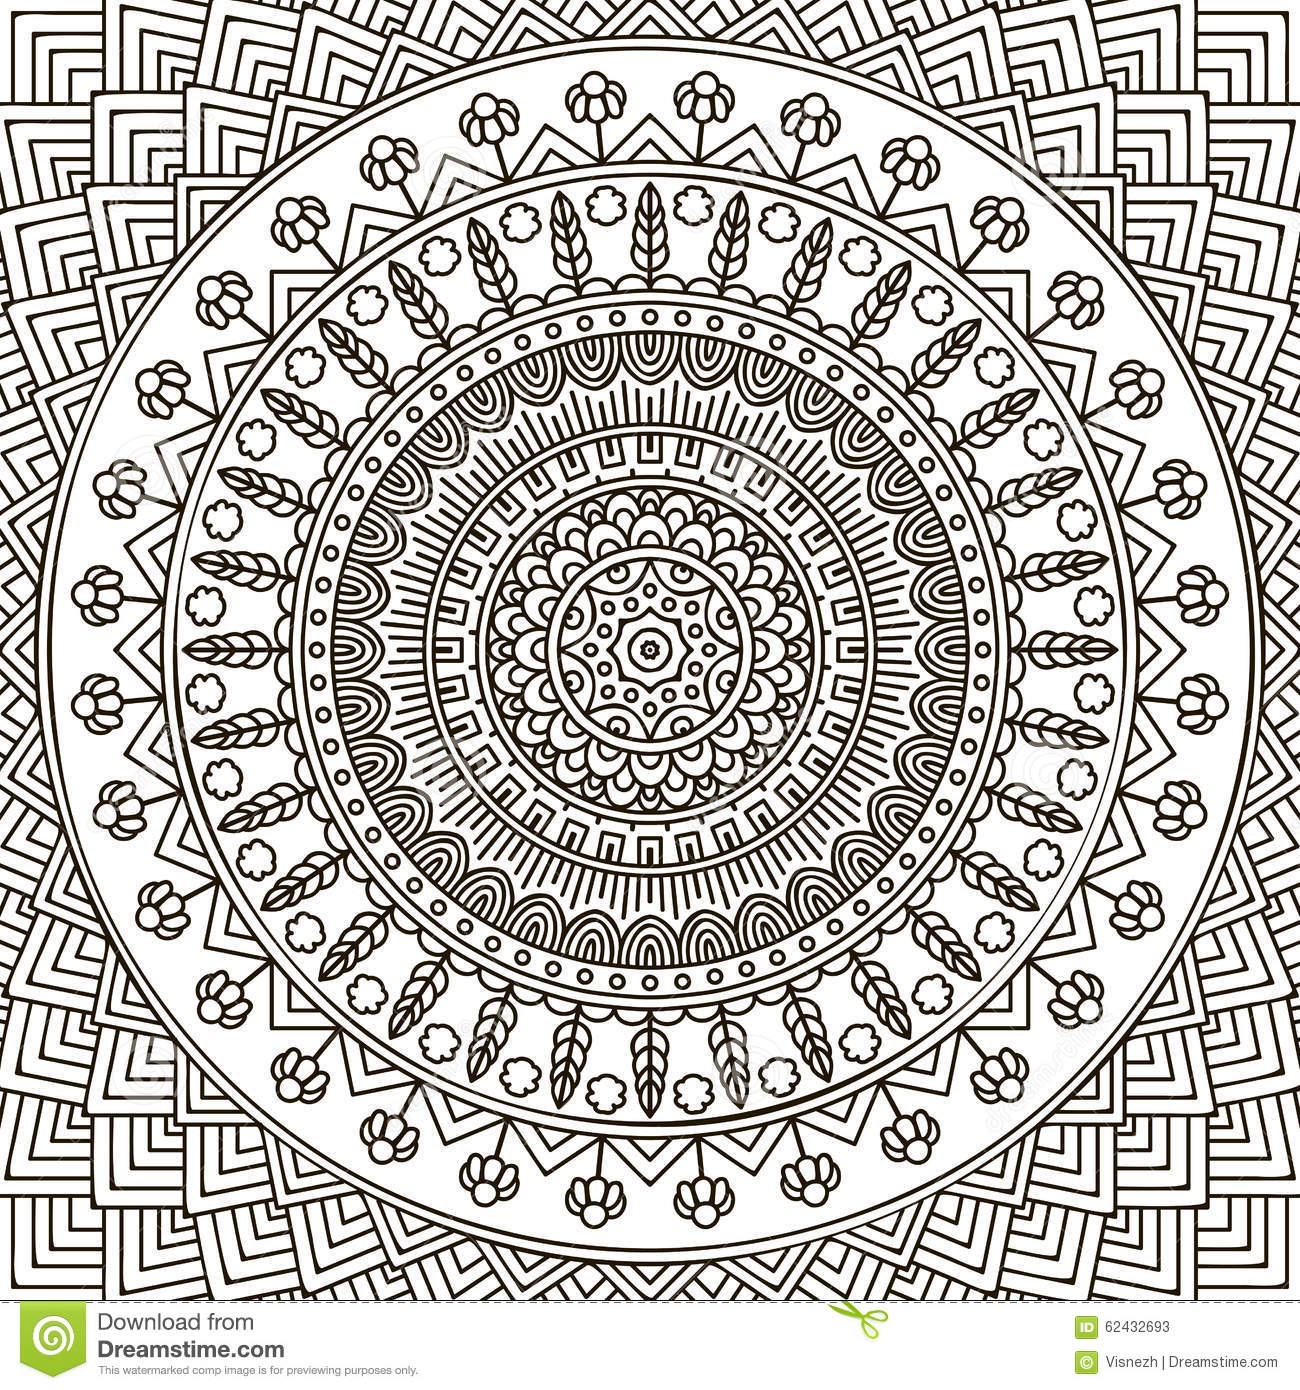 mandala coloring page ornament beautiful card geometric circle element made vector